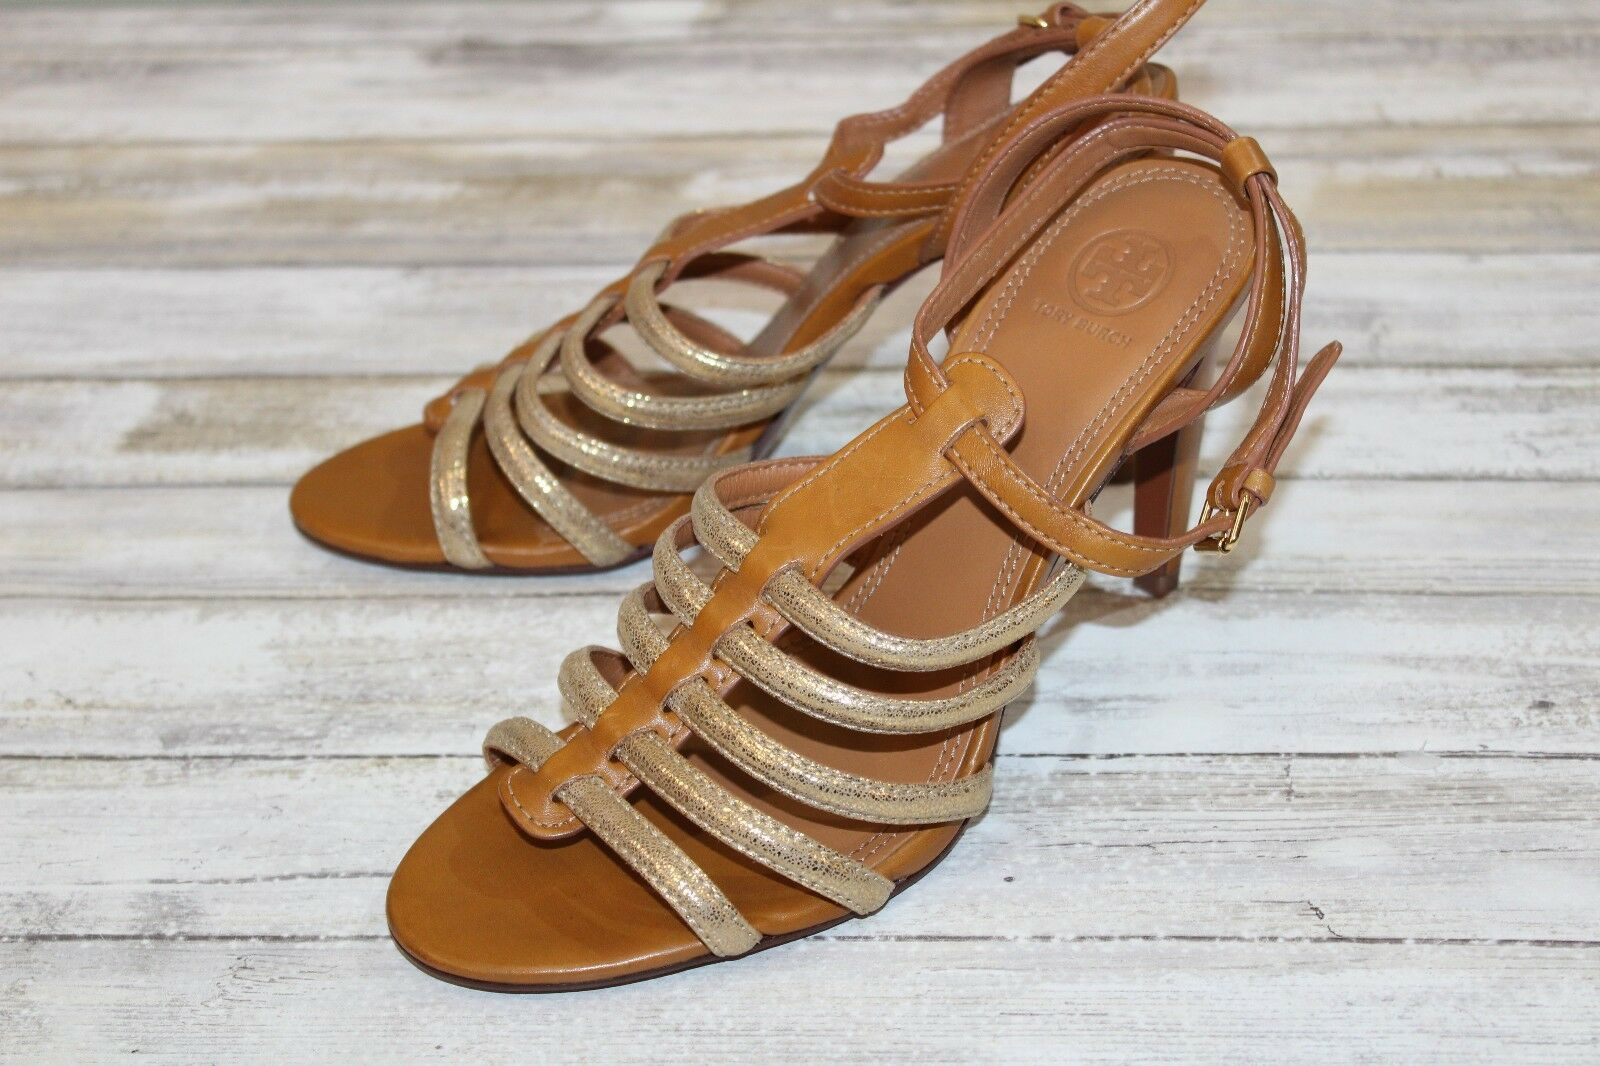 Tory Burch Gold Strap Stiletto Sandal - Women's Size 10.5 M, Tan & Gold